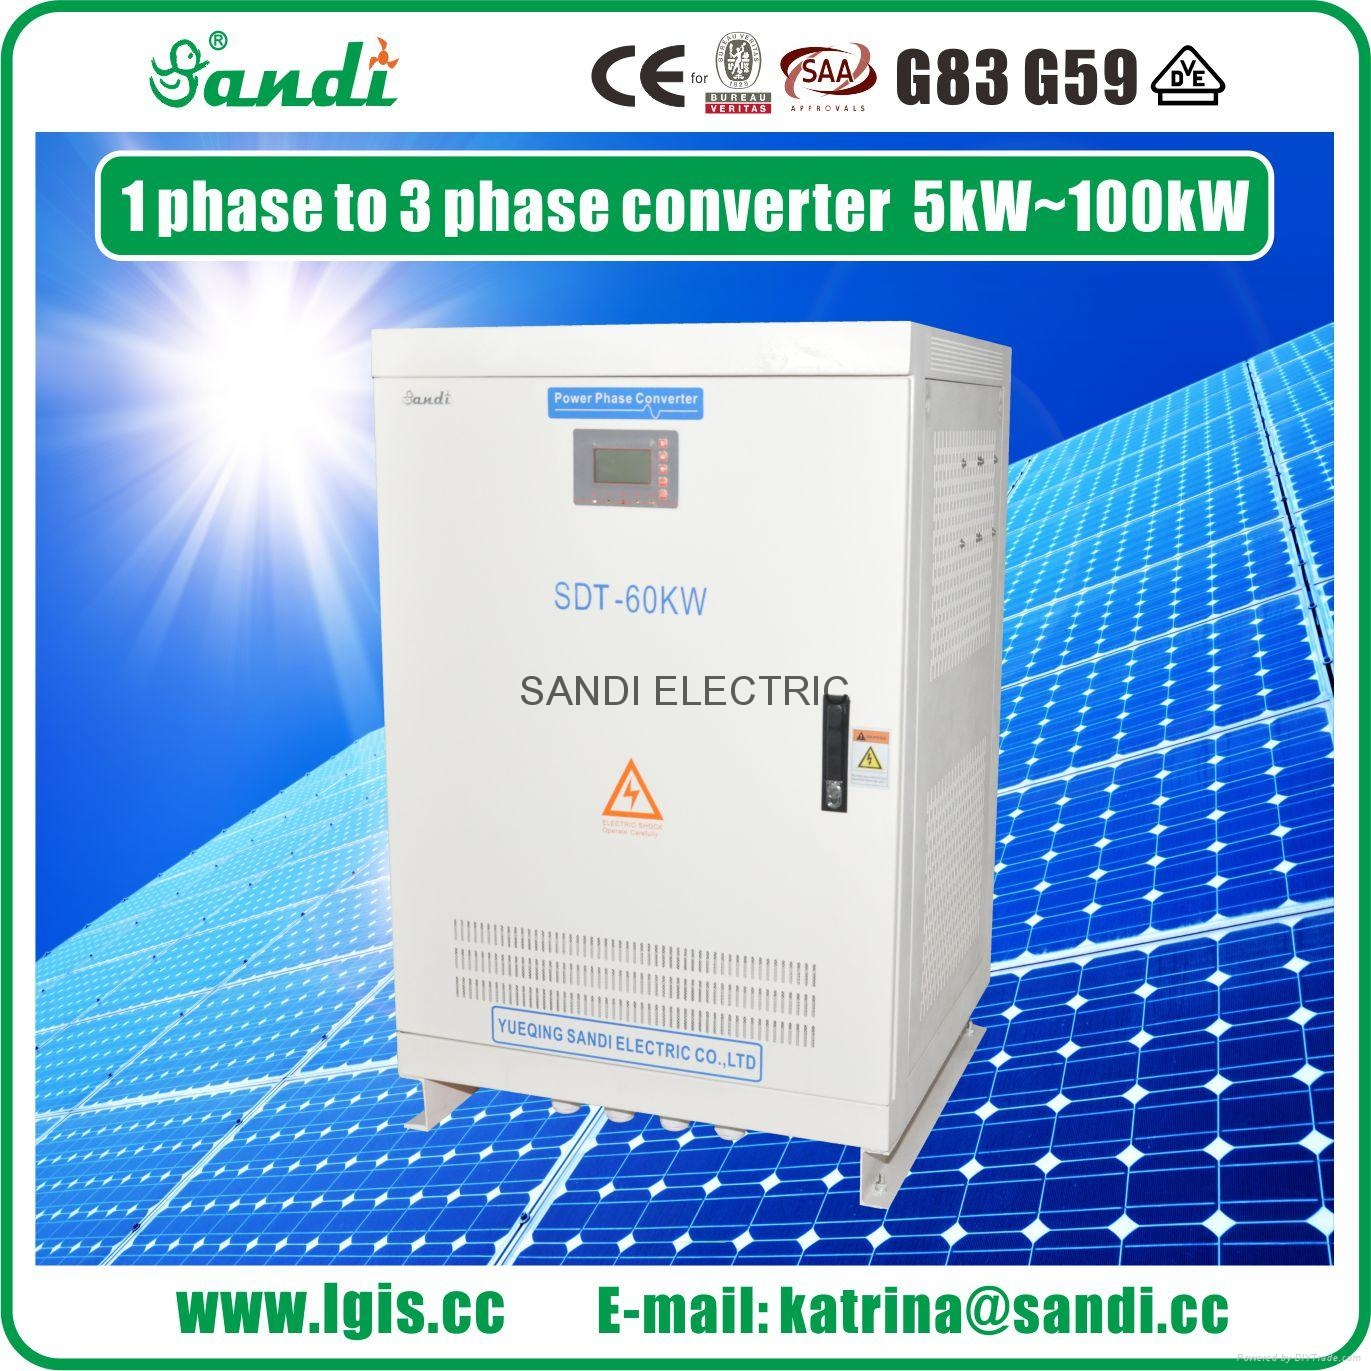 60kW Digital Phase Converter 220VAC single phase to 380VAC three phase converter